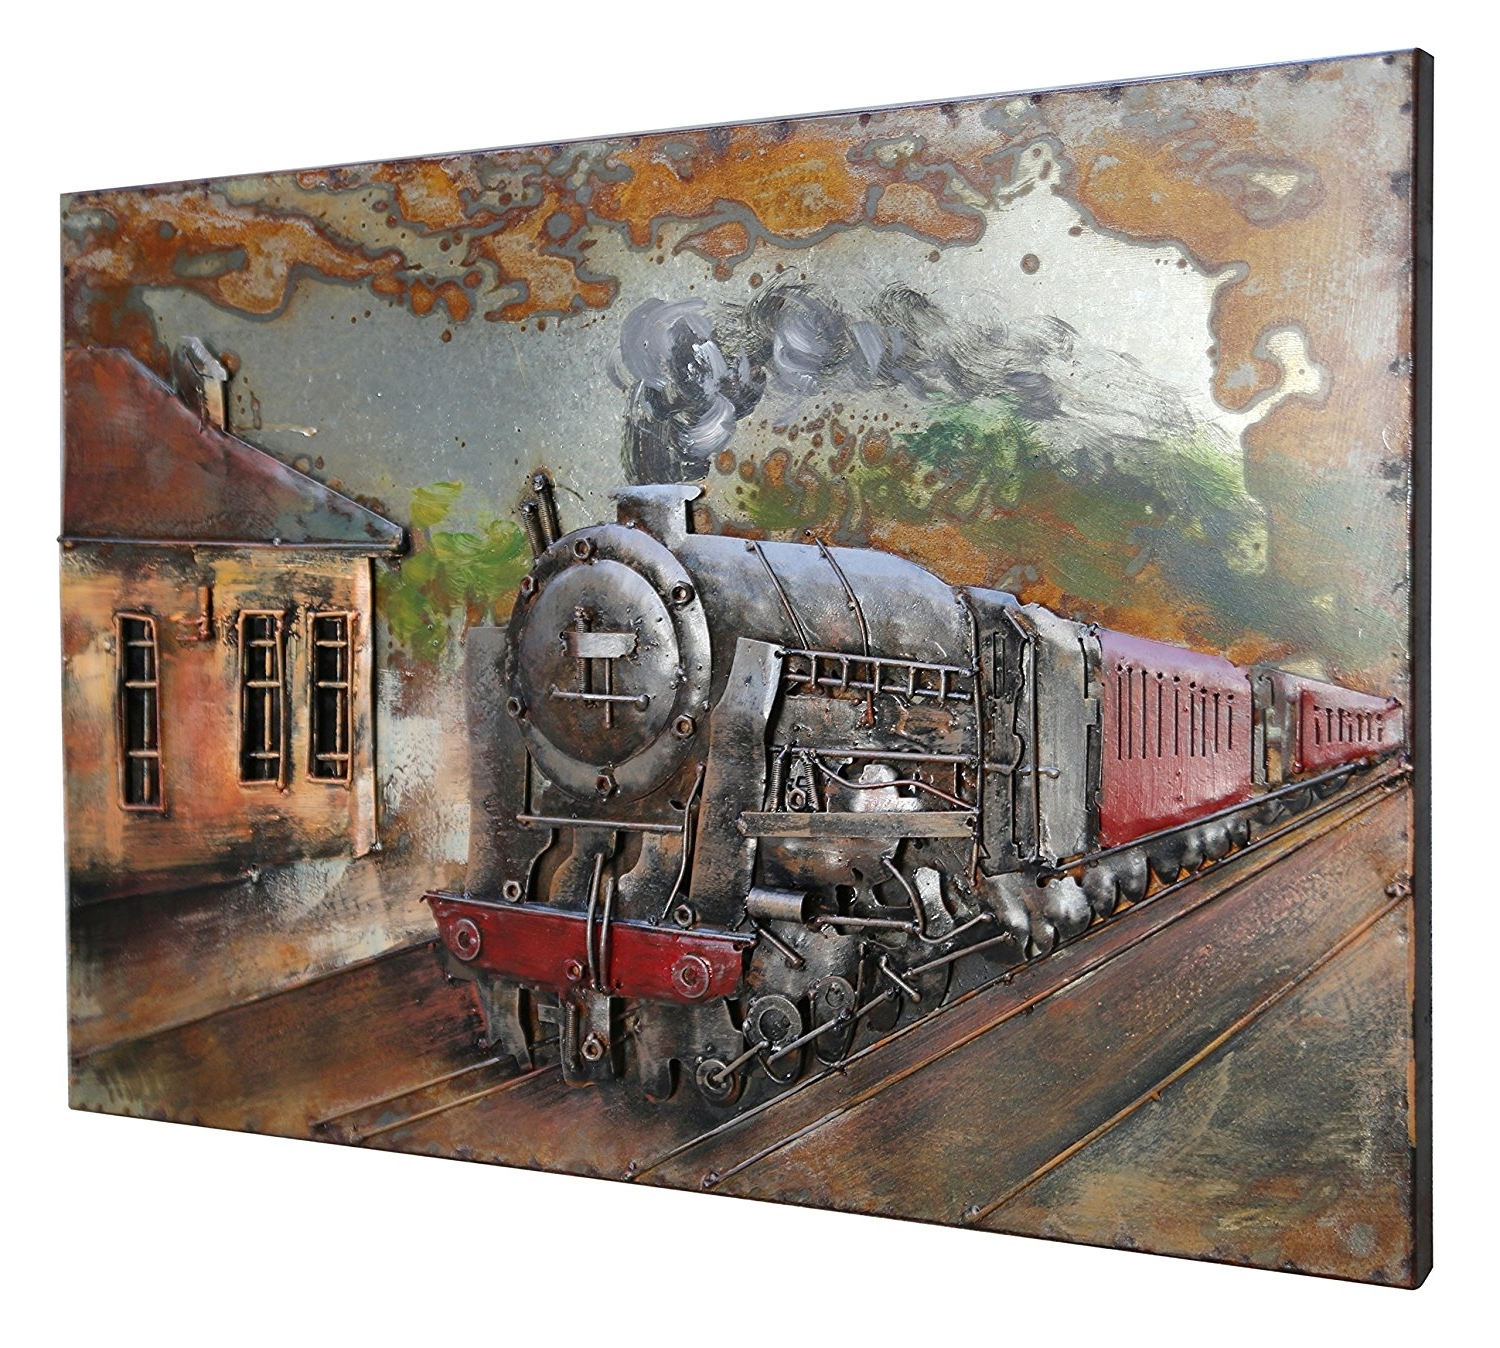 [%amazon: Asmork 3d Metal Art – 100% Handmade Metal Unique Wall Regarding Popular Unique 3d Wall Art|unique 3d Wall Art With Newest Amazon: Asmork 3d Metal Art – 100% Handmade Metal Unique Wall|newest Unique 3d Wall Art Regarding Amazon: Asmork 3d Metal Art – 100% Handmade Metal Unique Wall|well Known Amazon: Asmork 3d Metal Art – 100% Handmade Metal Unique Wall Within Unique 3d Wall Art%] (View 14 of 15)